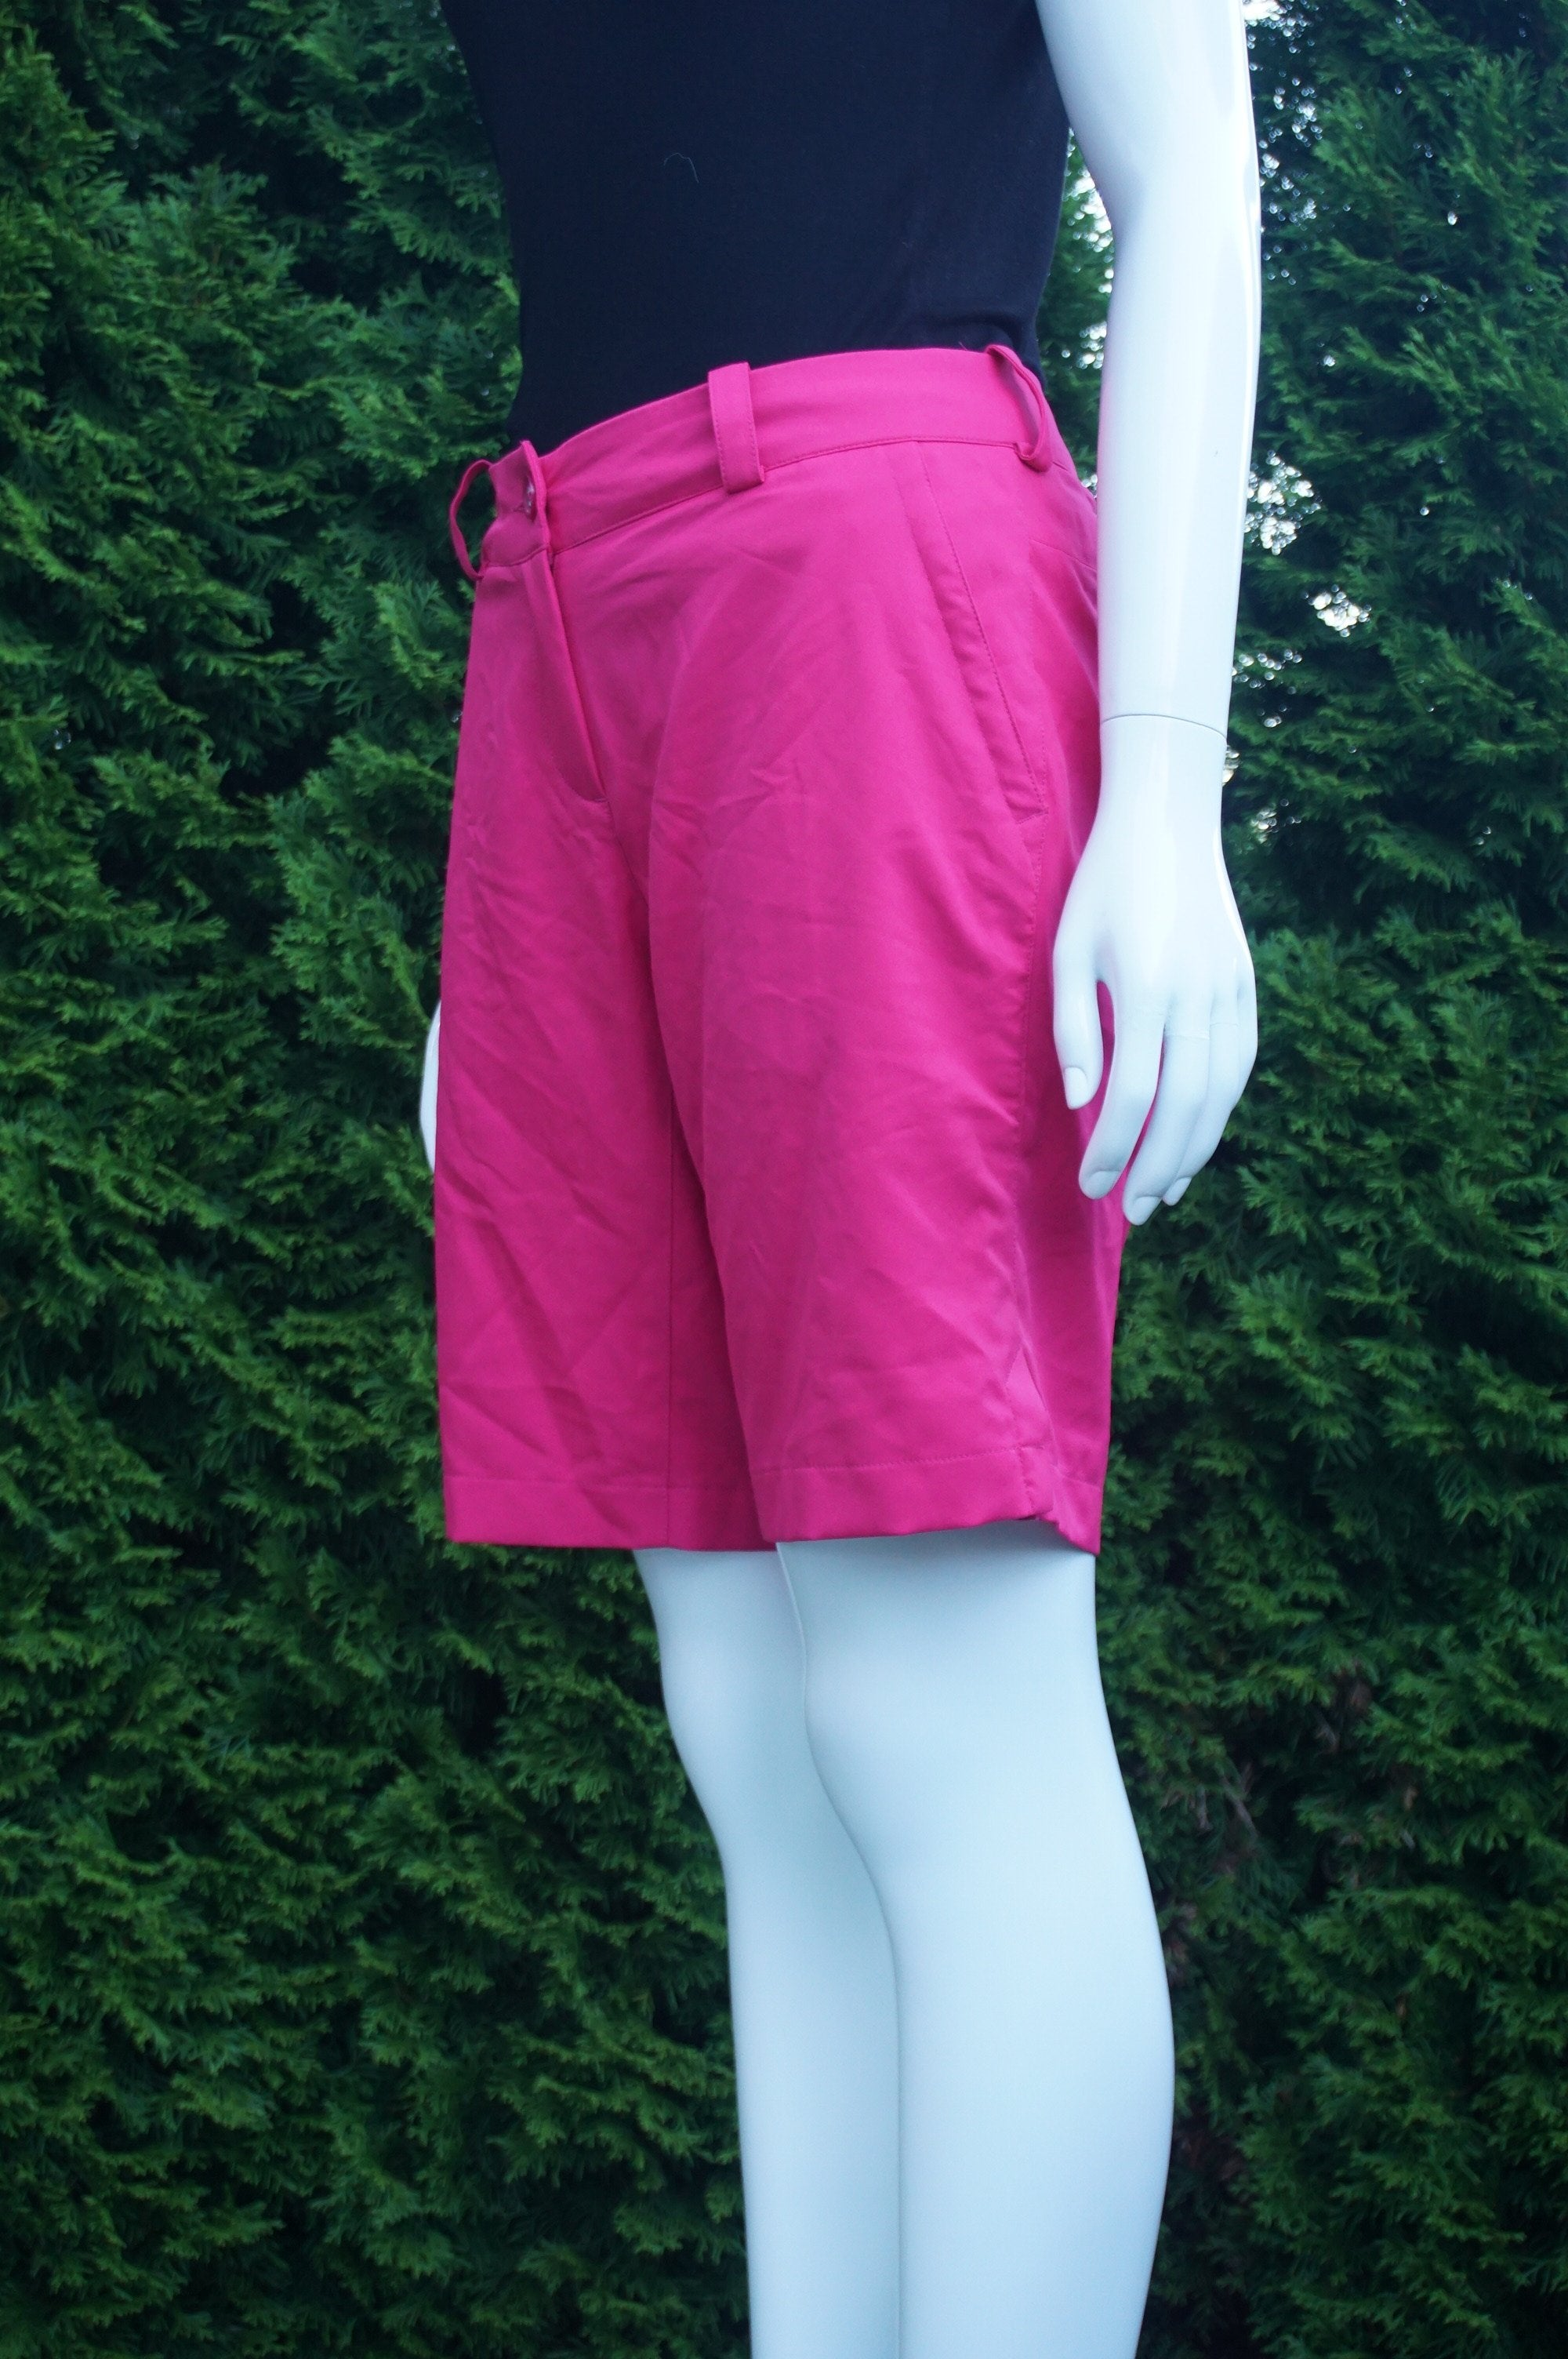 Nike Pink Golf Shorts, Waist 32 inches, length 18 inches., Pink, women's Skirts & Shorts, women's Pink Skirts & Shorts, Nike women's Skirts & Shorts, loose pants. Gold pants. Gold shorts, summer loose pants